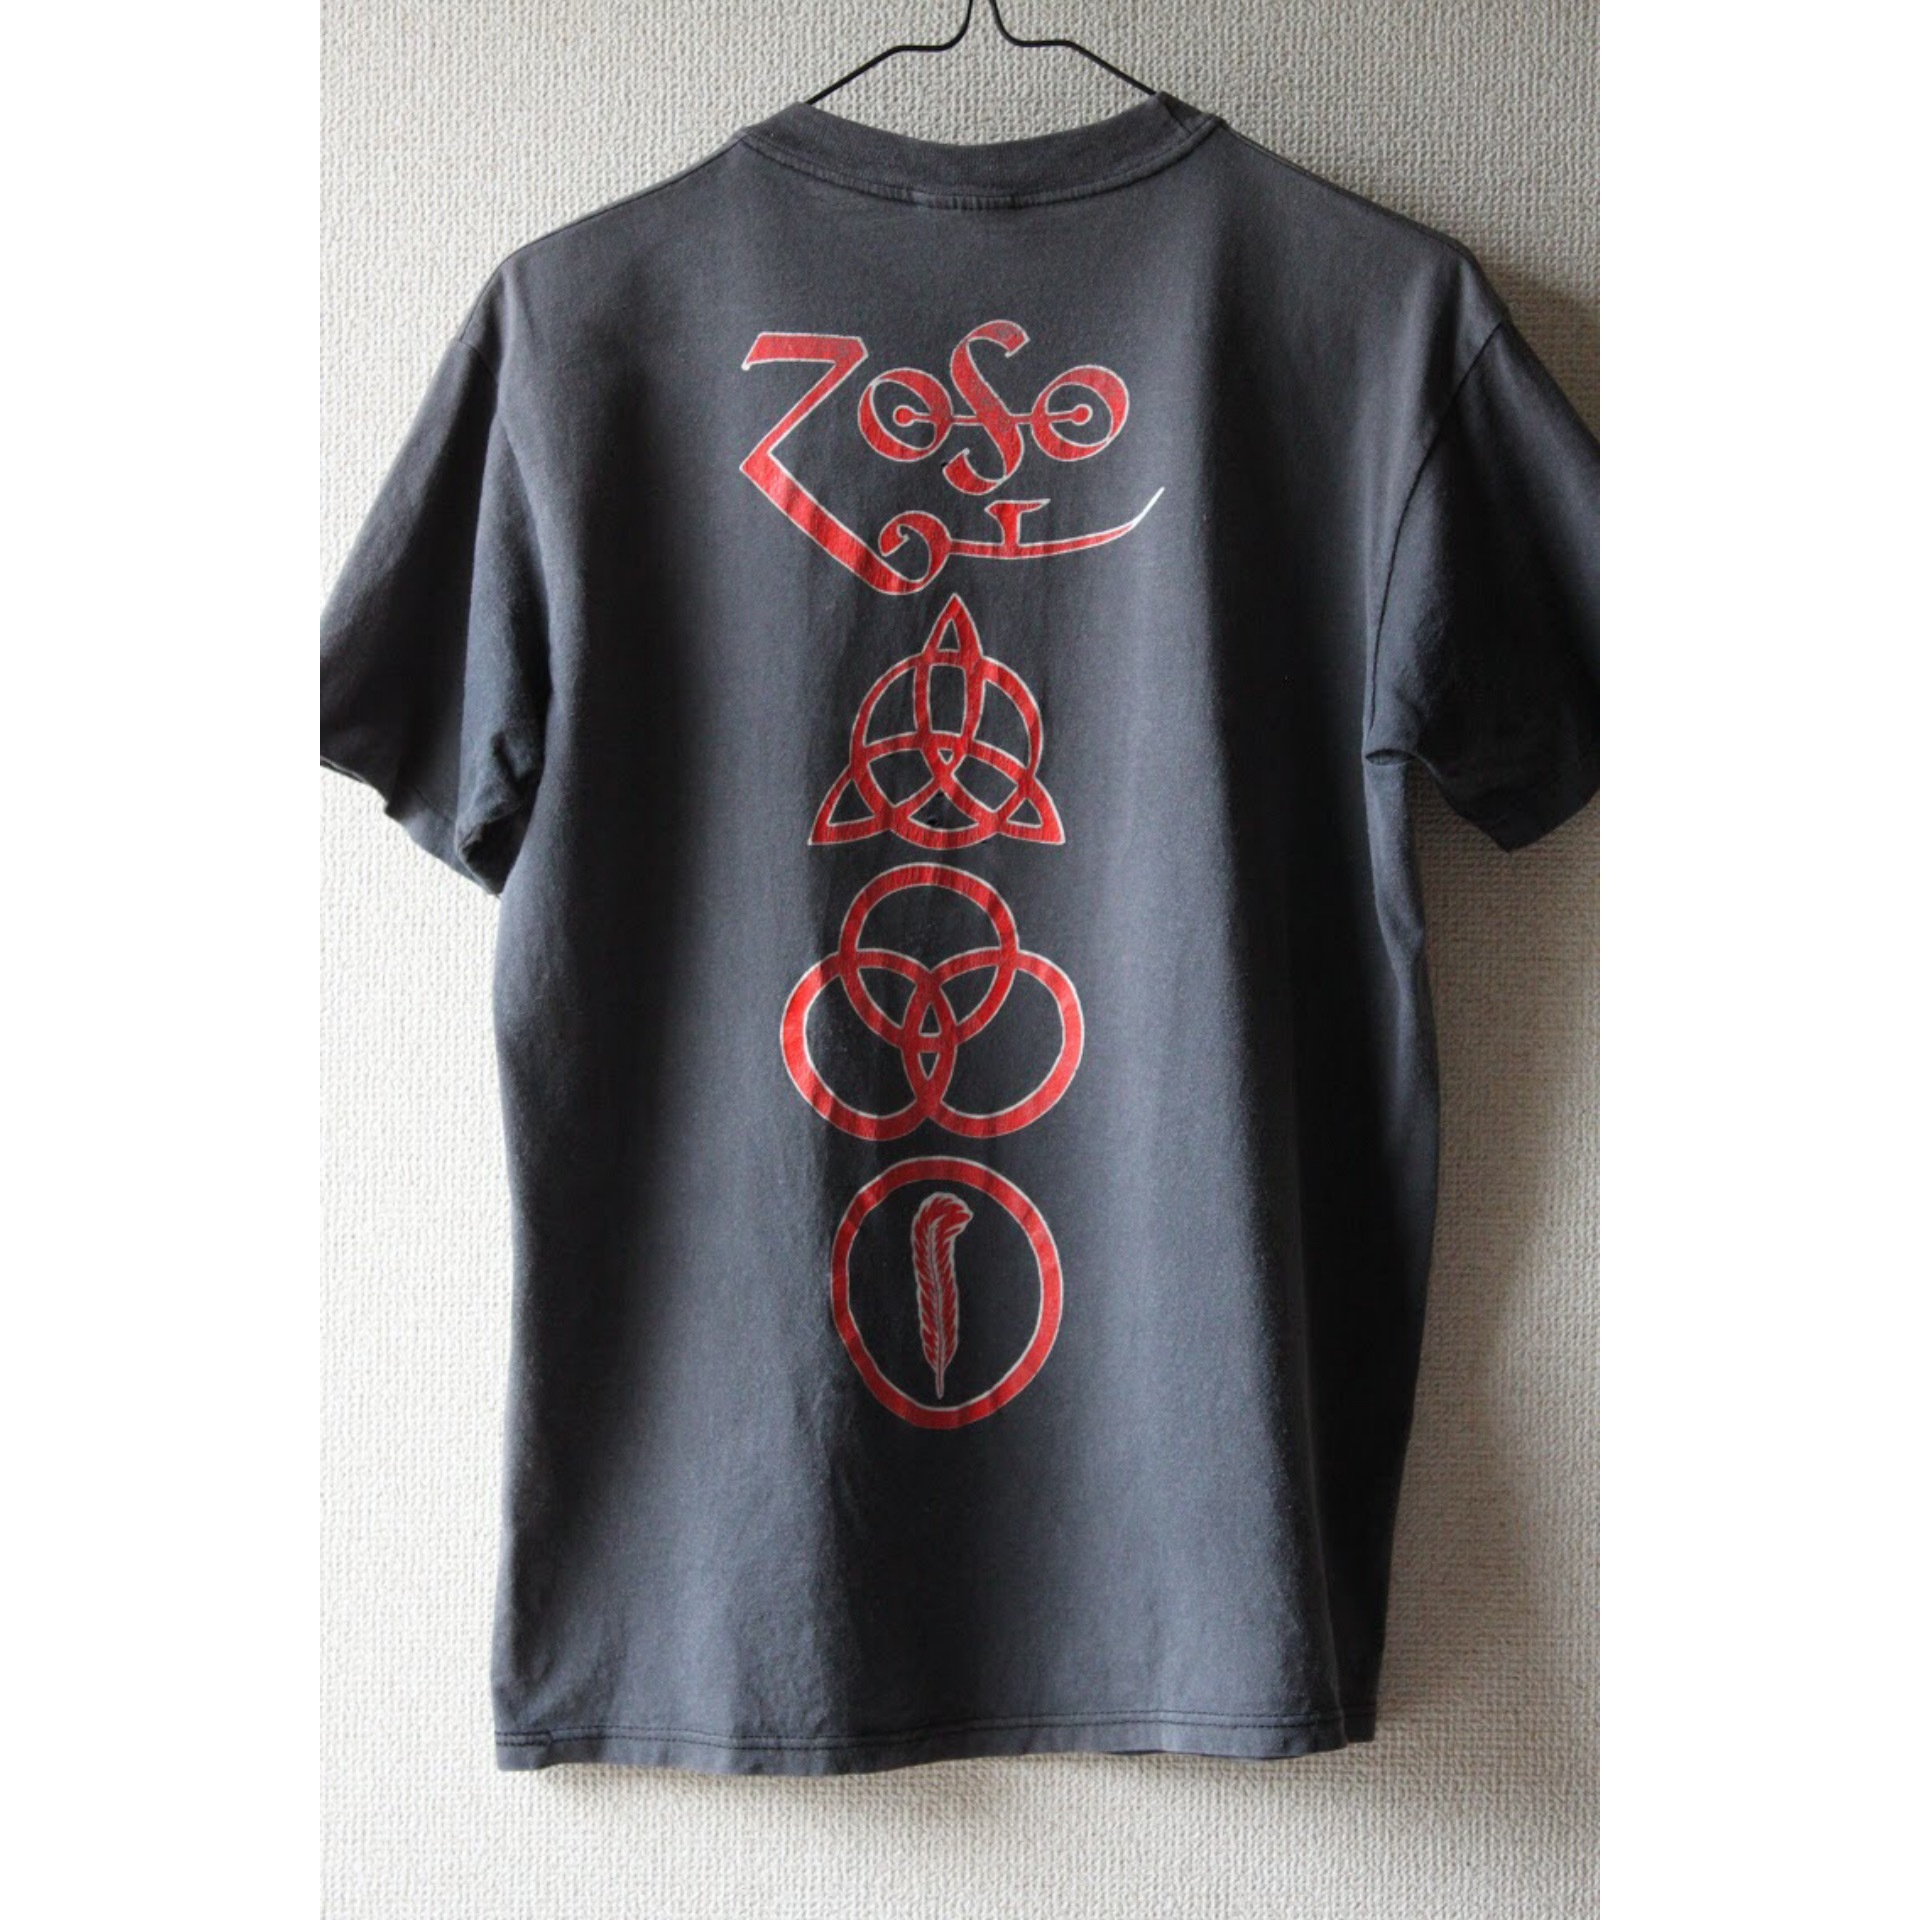 Vintage Led Zeppelin t shirt